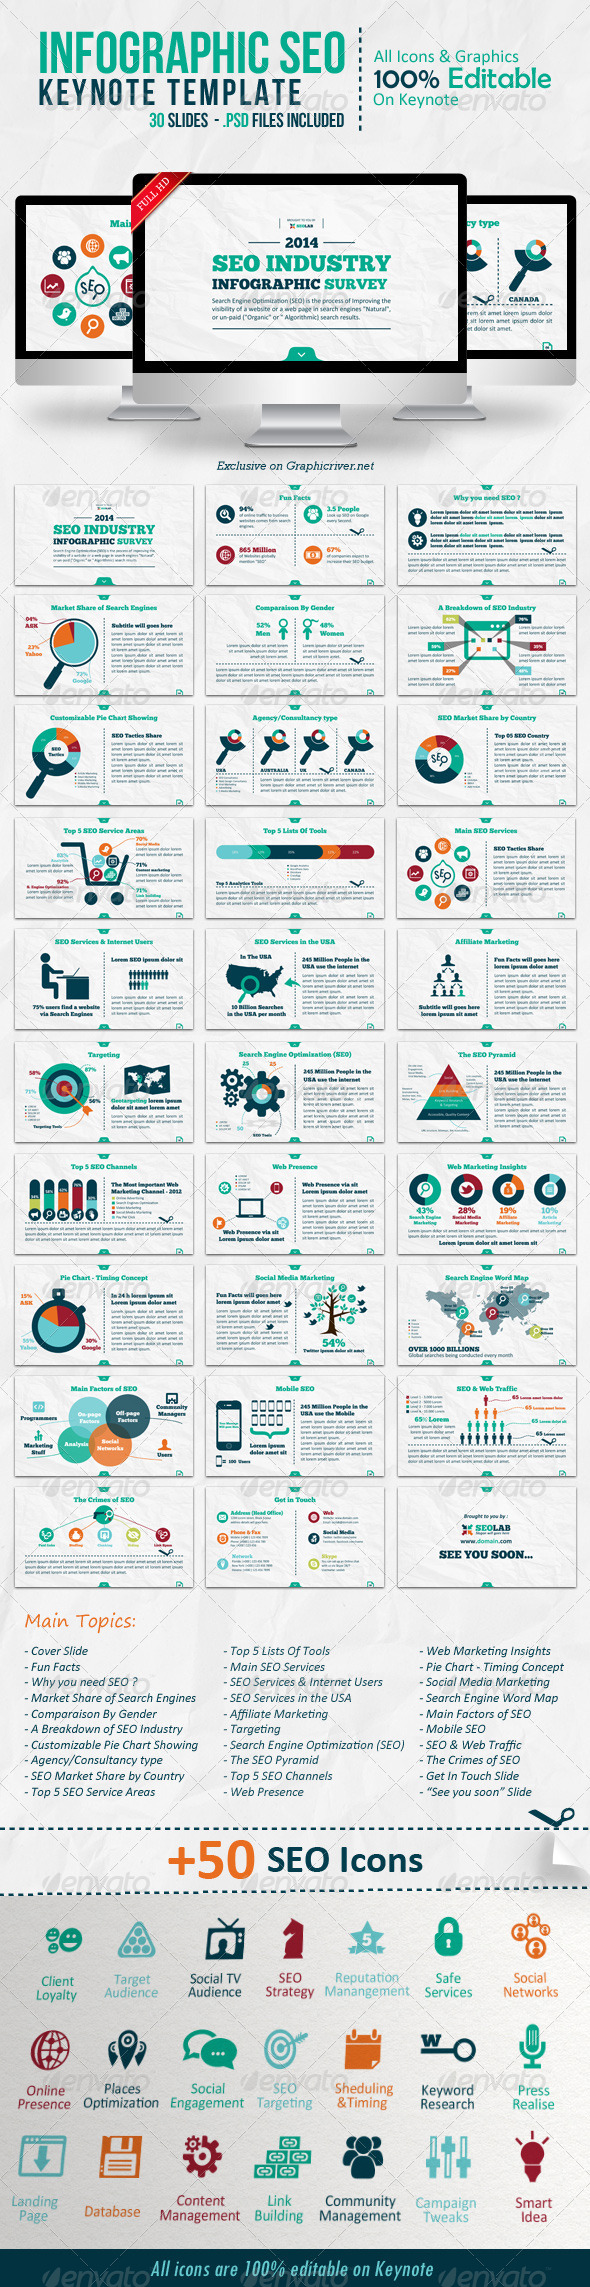 GraphicRiver Infographic SEO Keynote Template 6909941